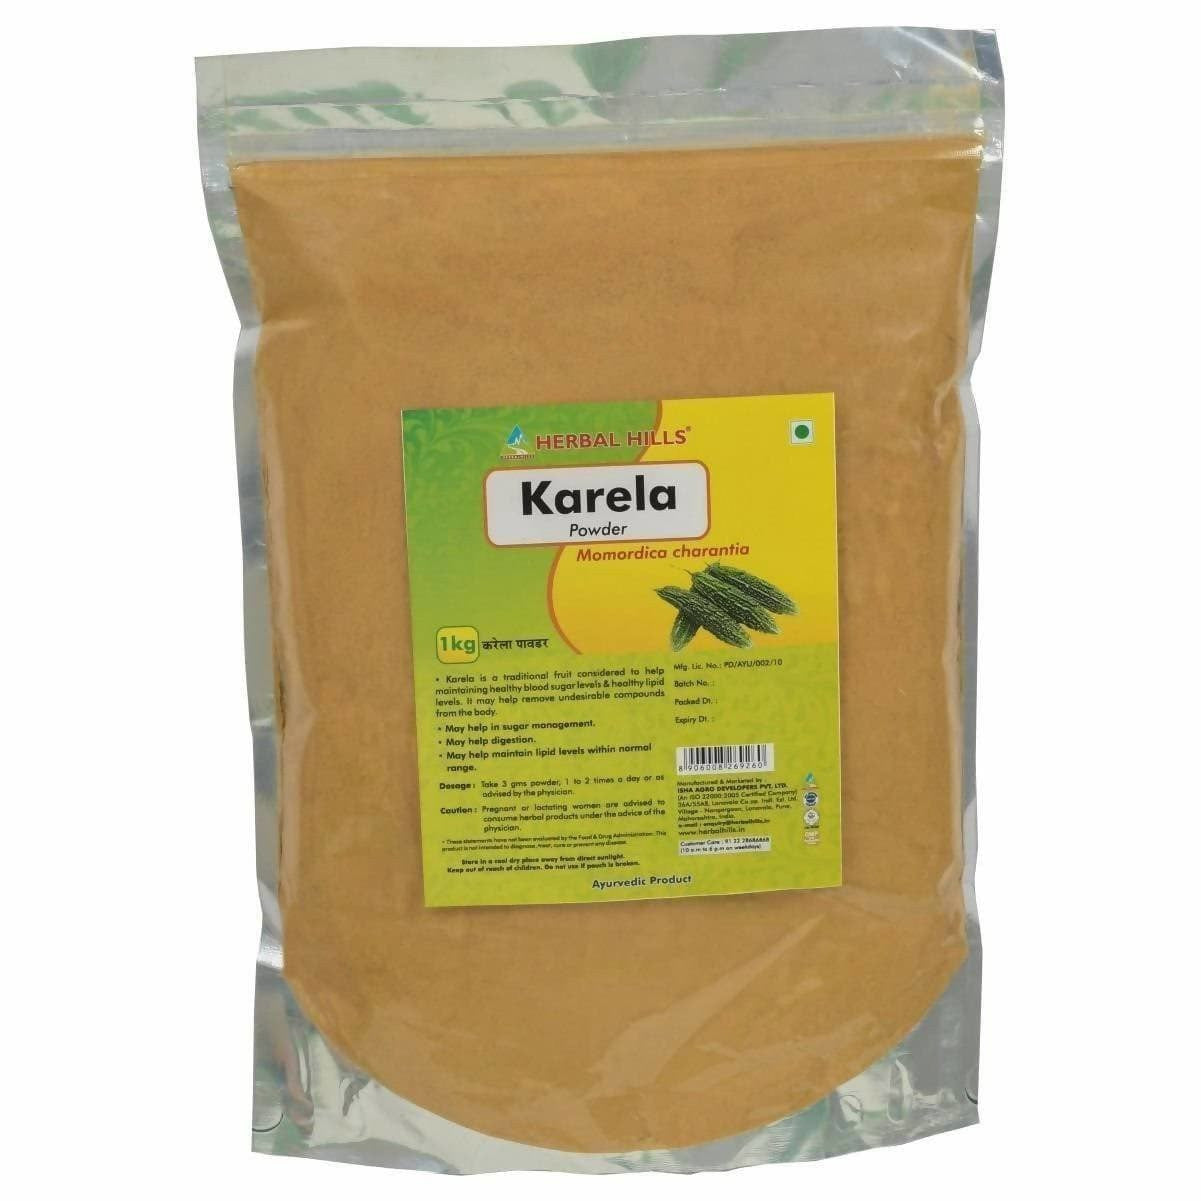 Herbal Hills Karela Powder - 1 kg